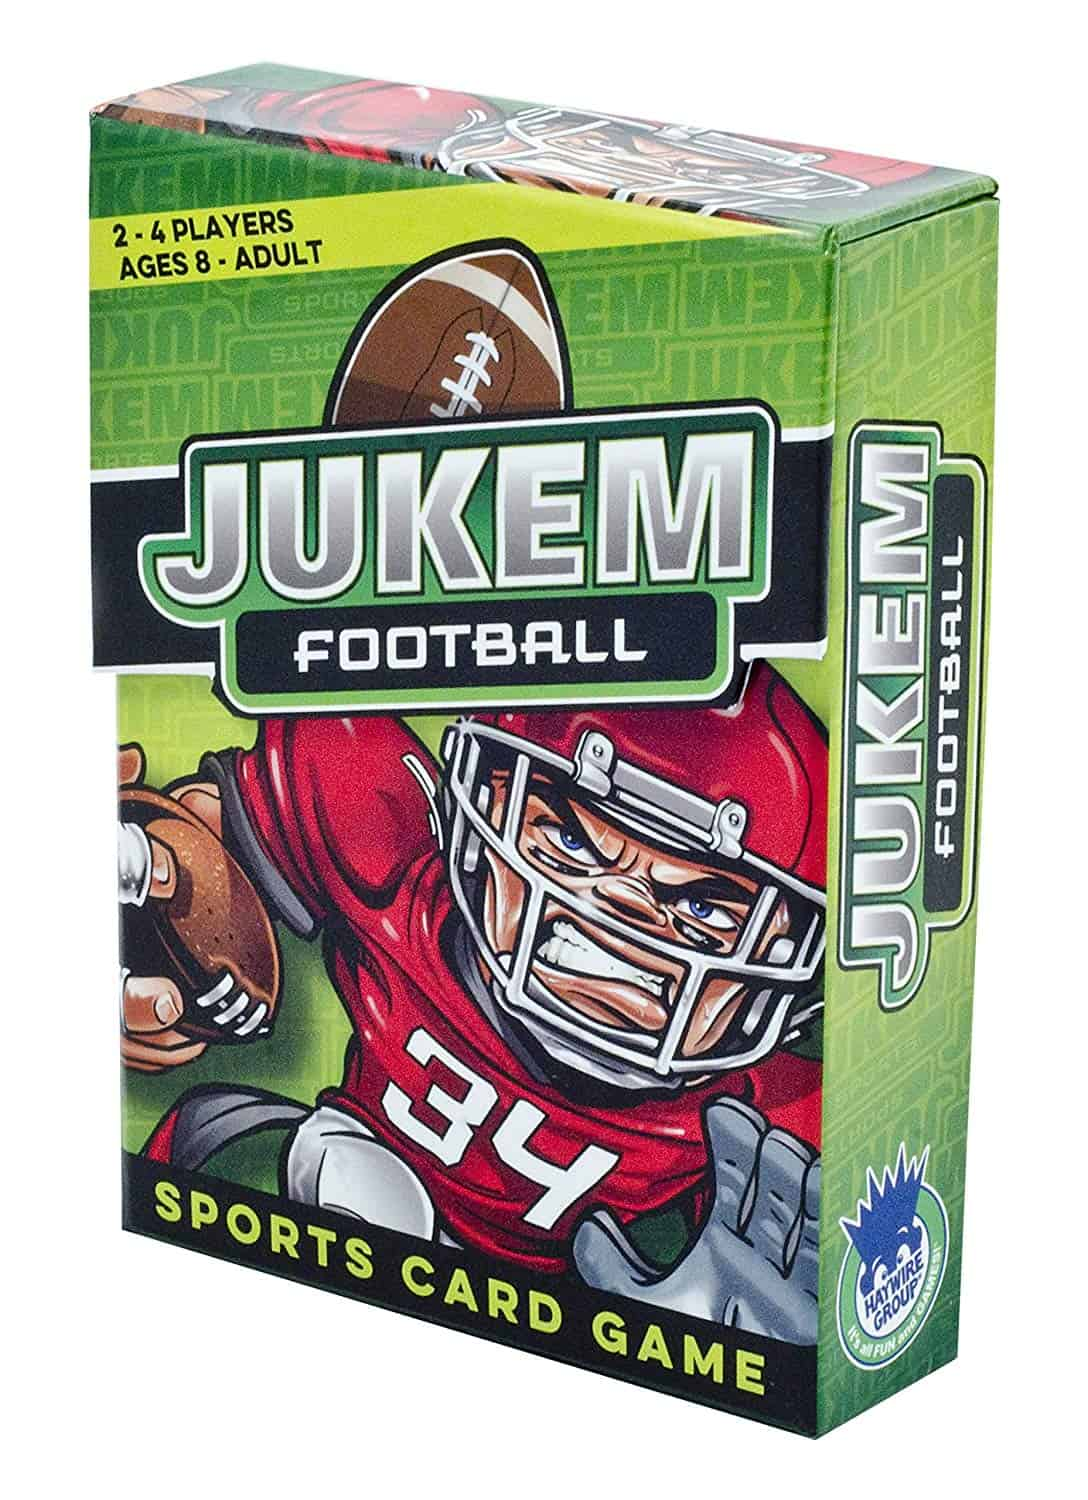 Jukem Football Card Game